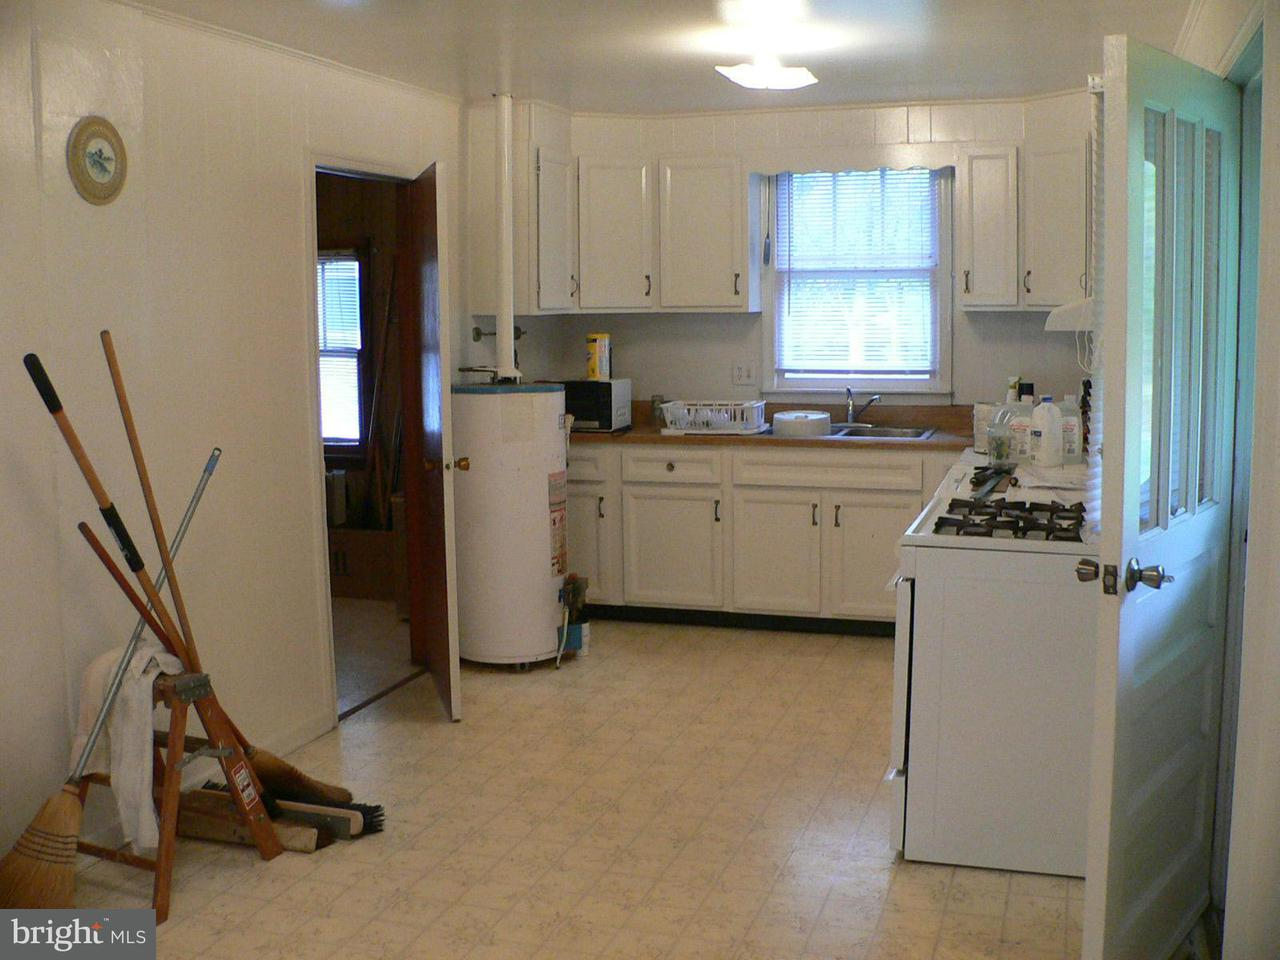 Additional photo for property listing at 3515 Lucas Hollow Rd  Stanley, Virginia 22851 United States